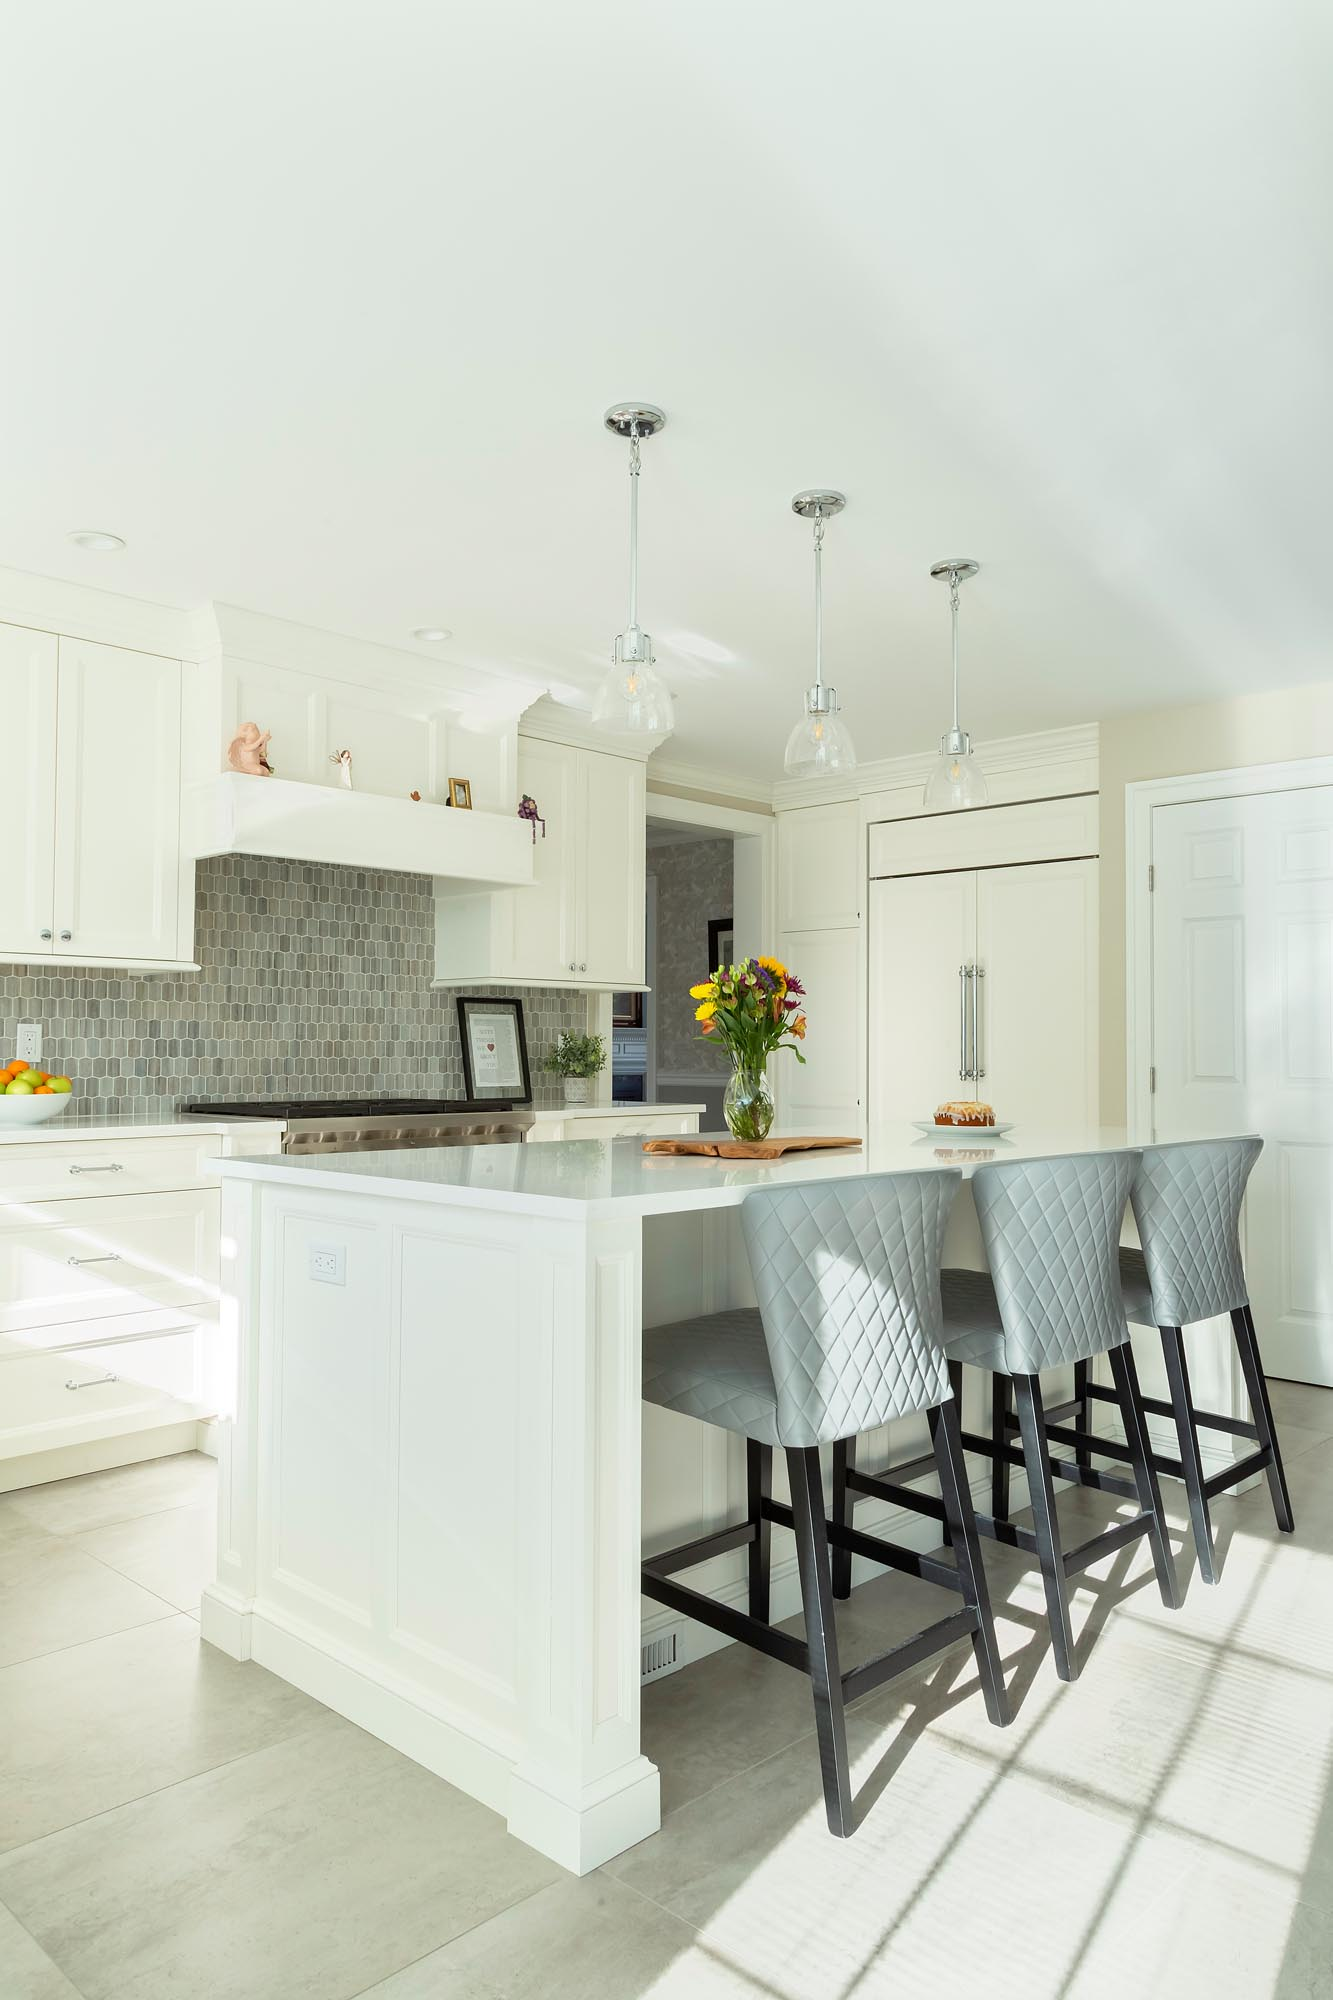 Transitional white kitchen with white center island and stools